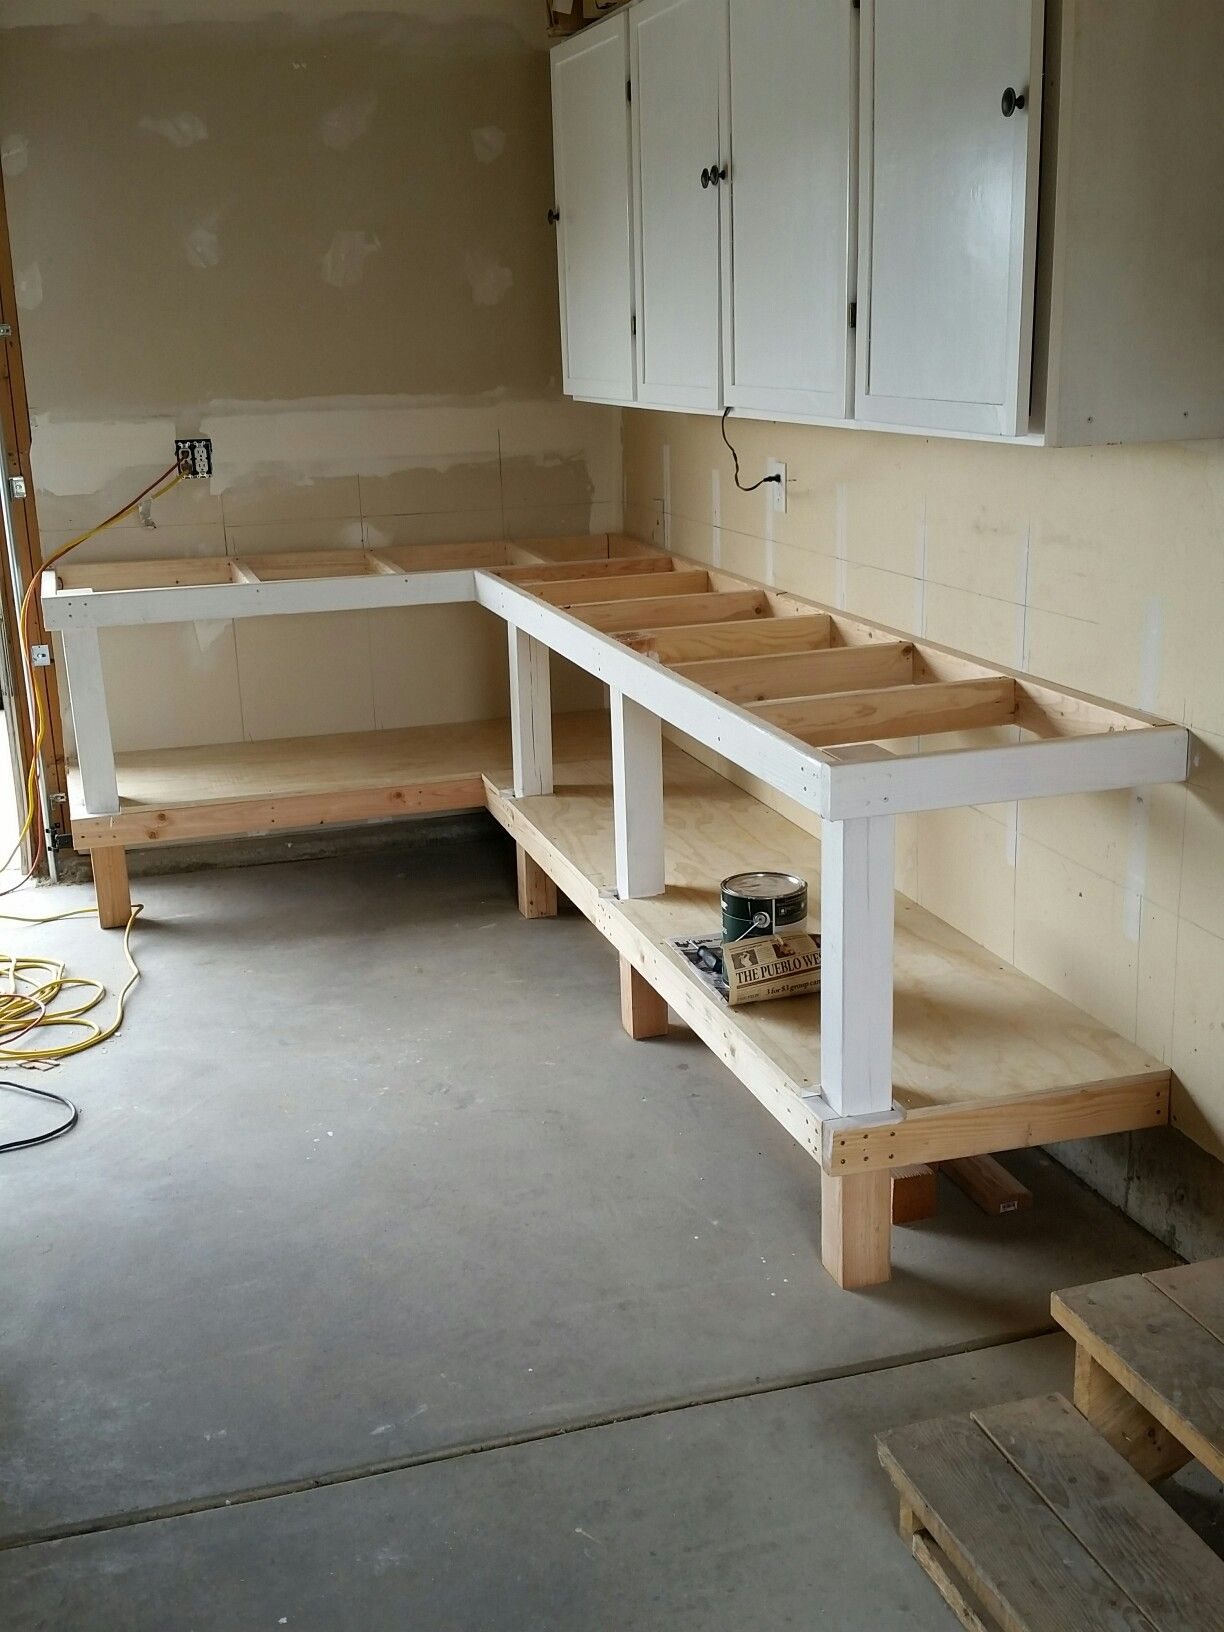 Install The Bench Top Plywood Garage Workbench Plans Workbench Plans Diy Garage Work Bench